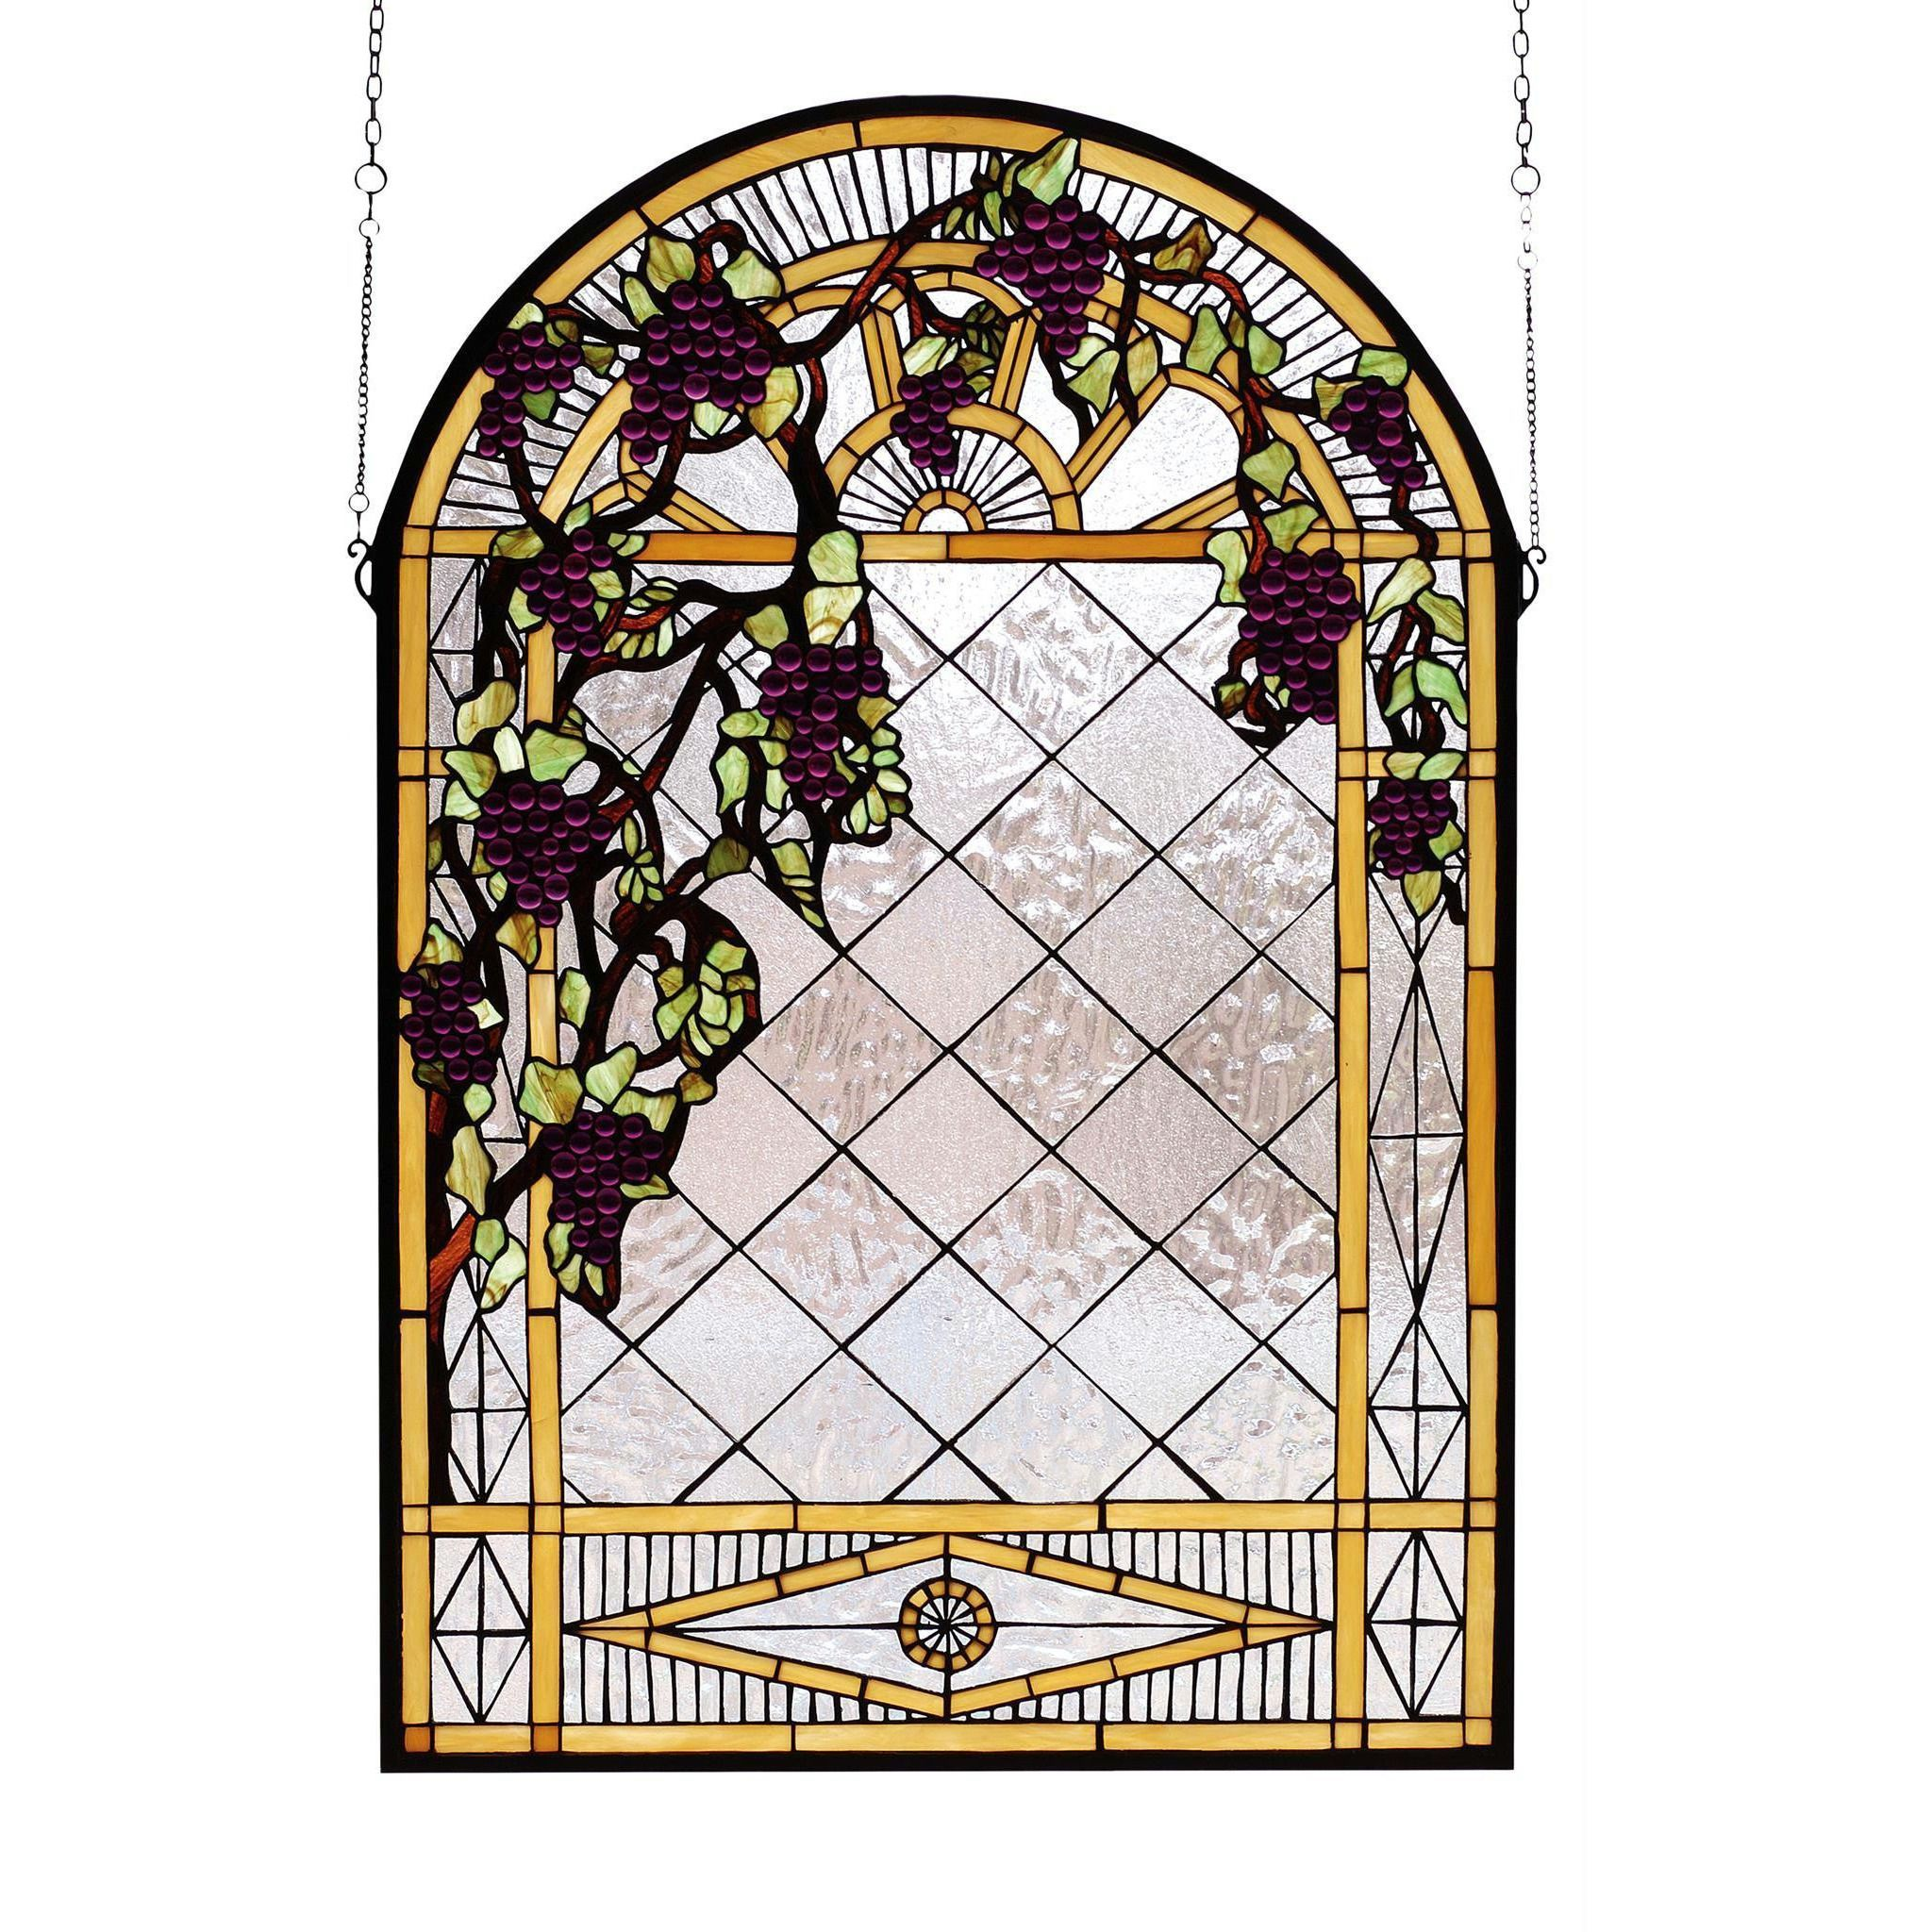 24 Inch W X 36 Inch H Grape Diamond Trellis Stained Glass Window 24 Inch W X 36 Inch H Grape Diamo Glass Window Art Stained Glass Panels Stained Glass Windows